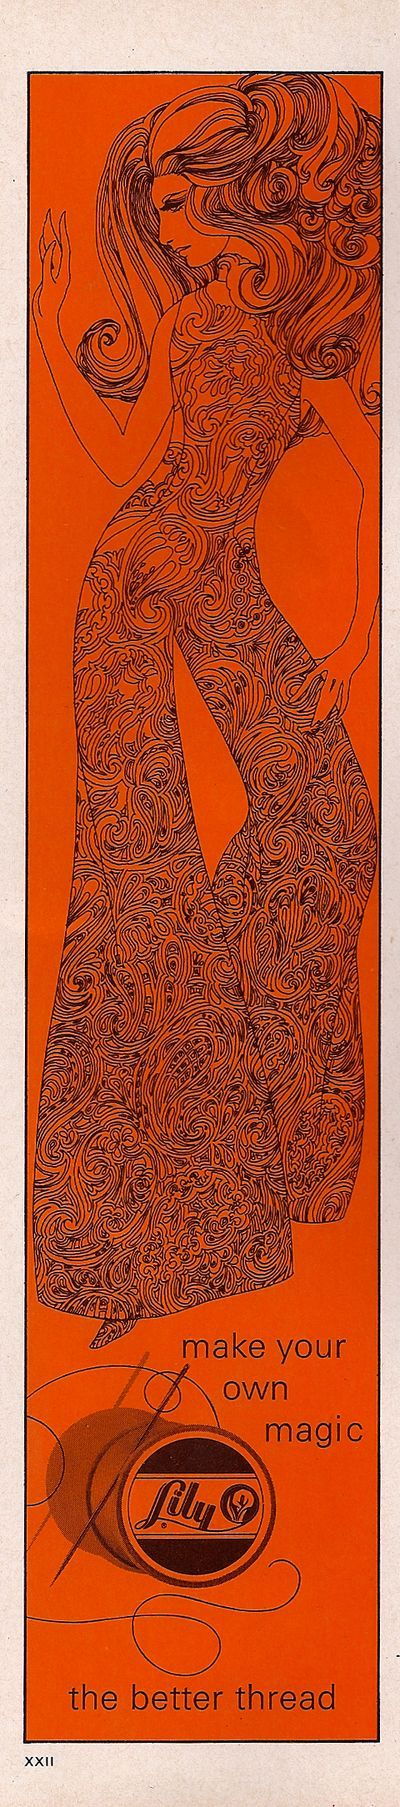 "1969 ""lily"" thread ad--- <3 the design and orange color on this ad"